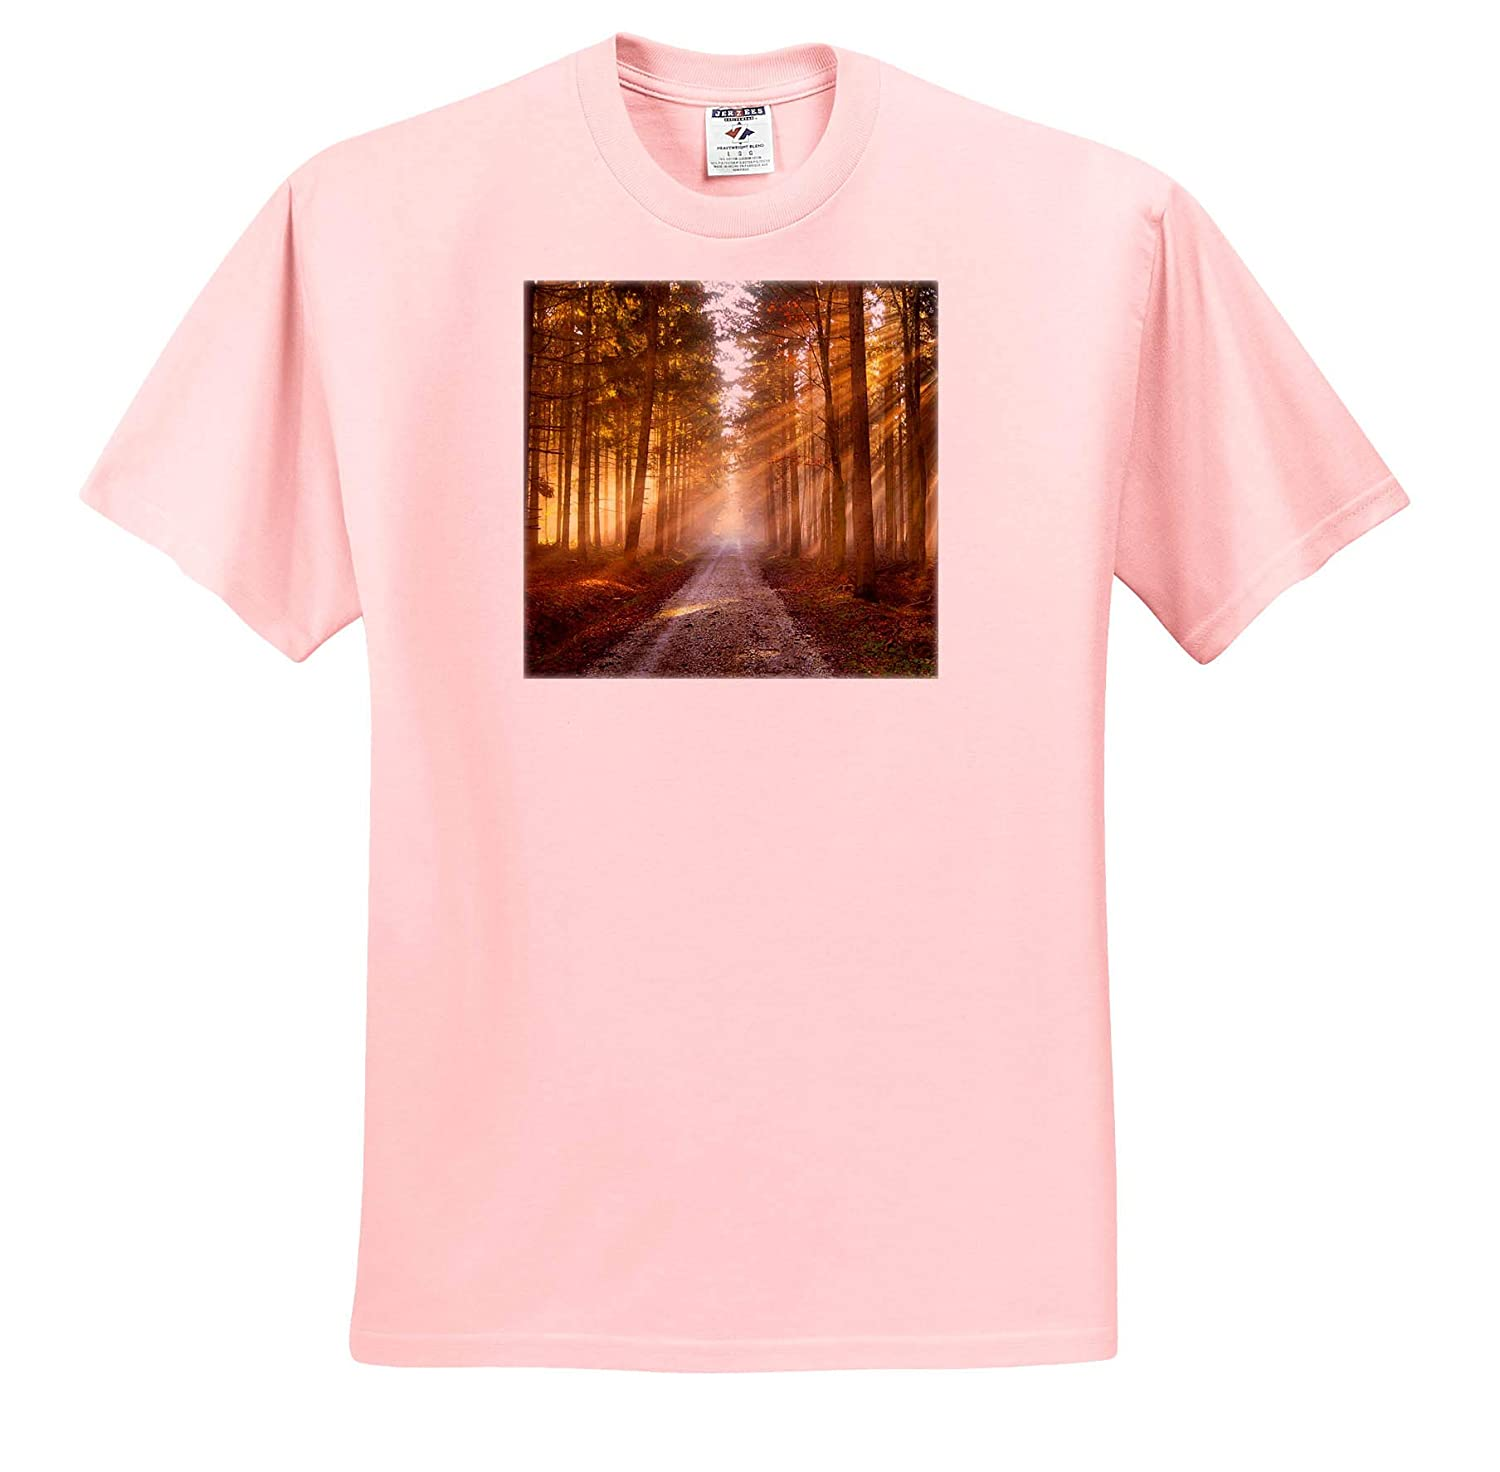 3dRose Stamp City Nature Photograph of Sunlight Through The Pines at Double Trouble State Park - T-Shirts